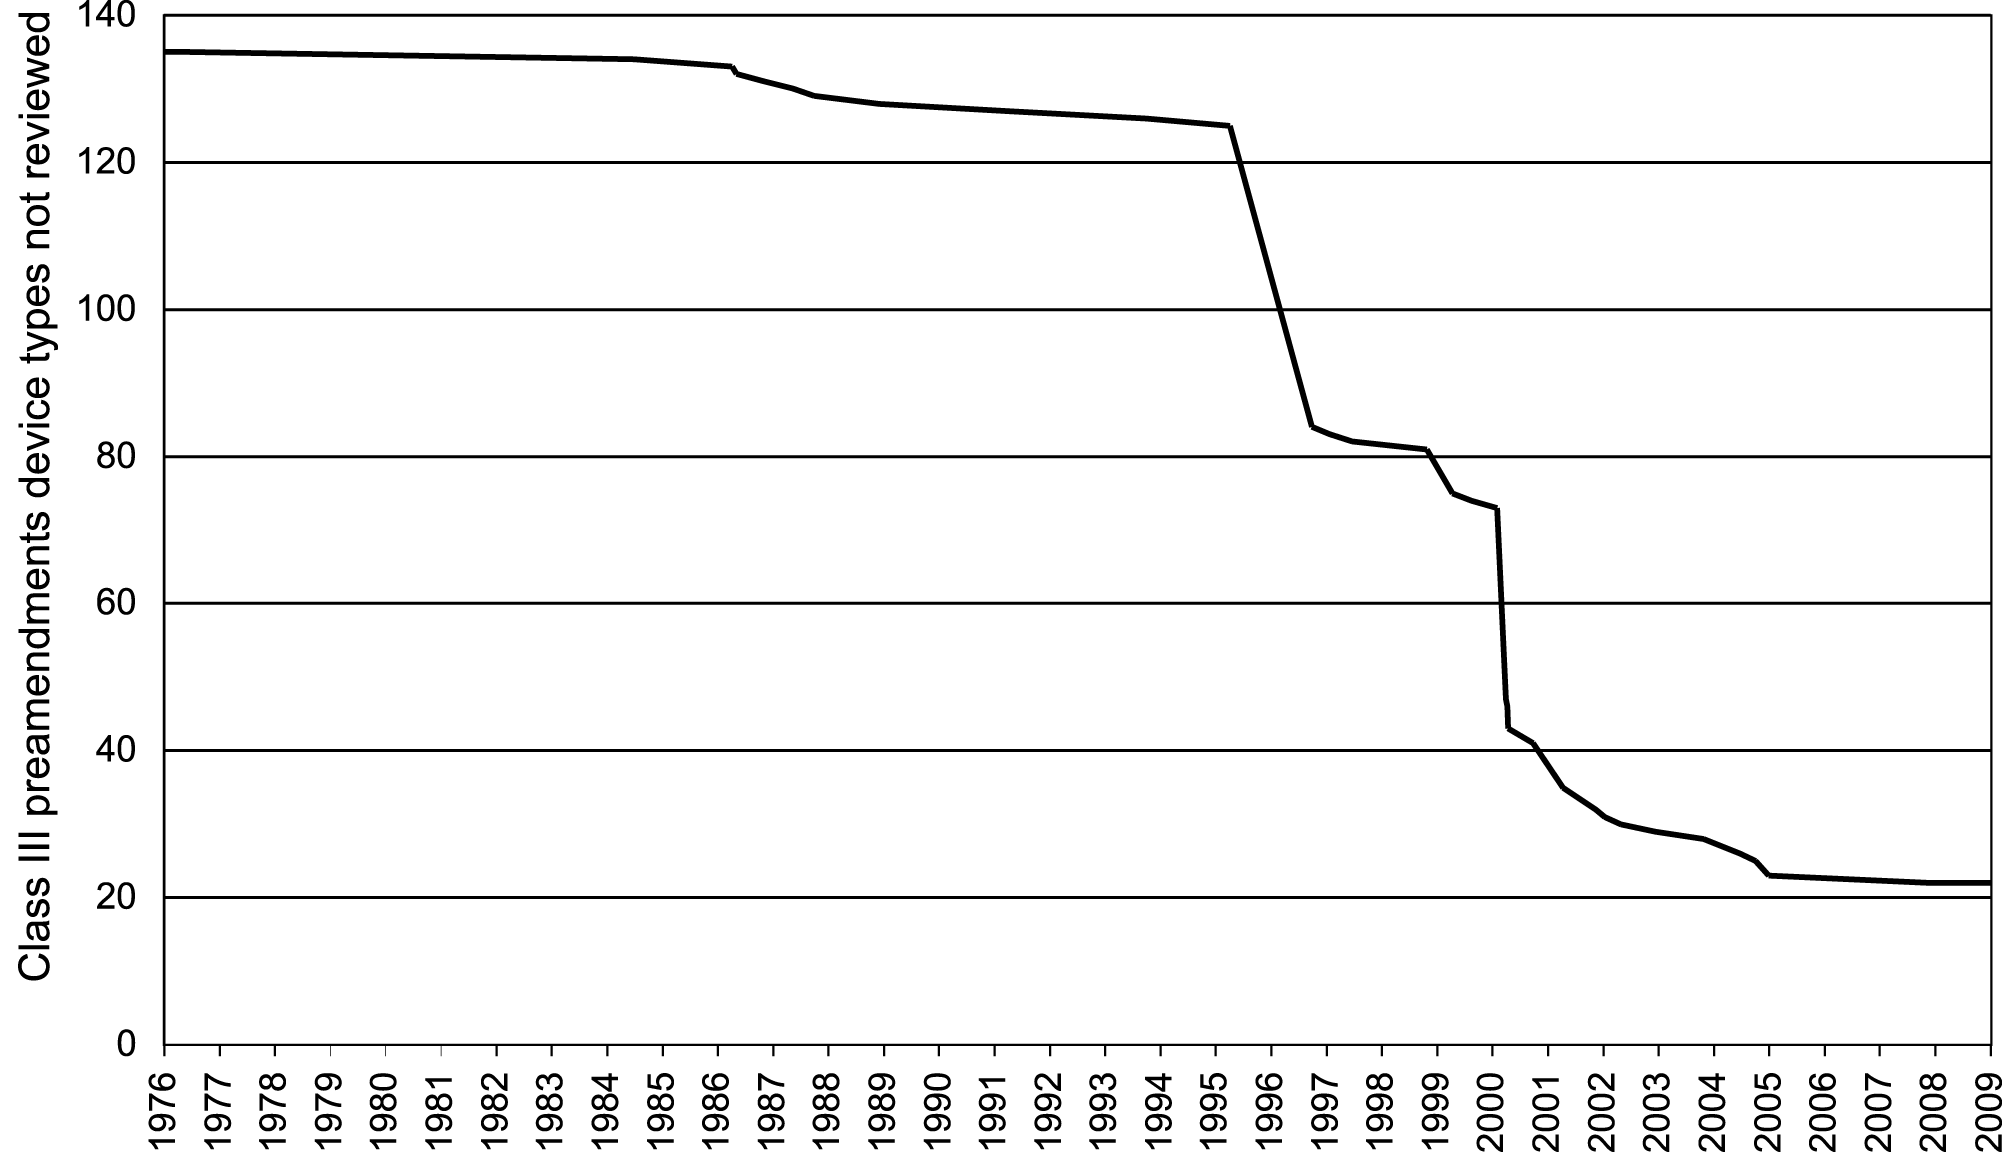 Class III 510(k) device types not fully reviewed by the FDA, 1976–2009.